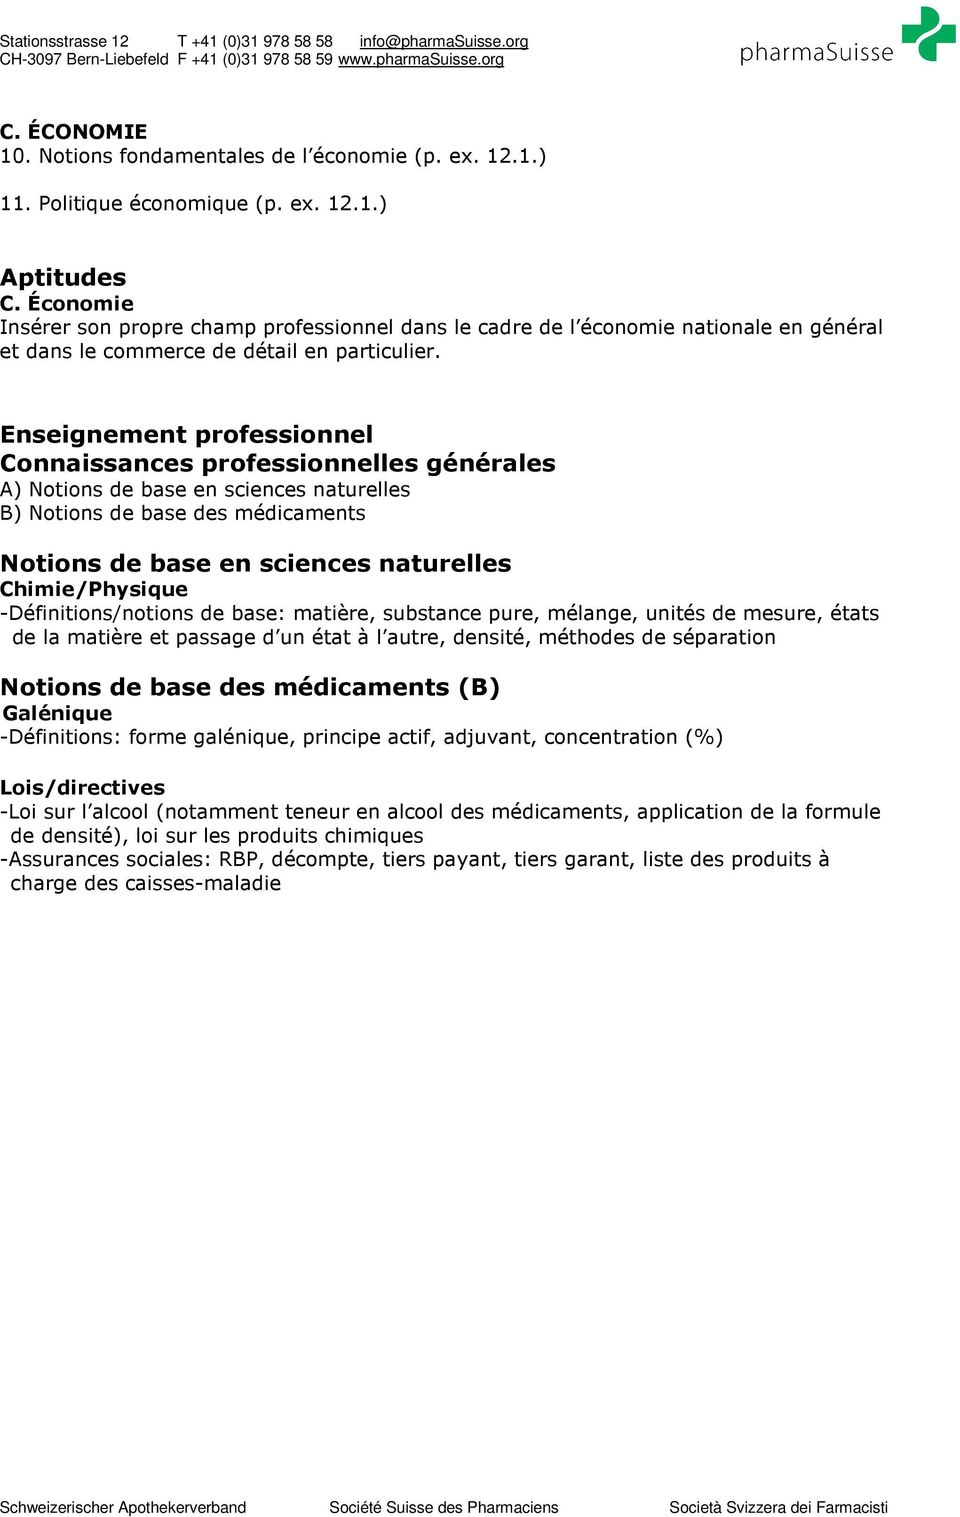 Enseignement professionnel professionnelles générales A) Notions de base en sciences naturelles B) Notions de base des médicaments Notions de base en sciences naturelles Chimie/Physique